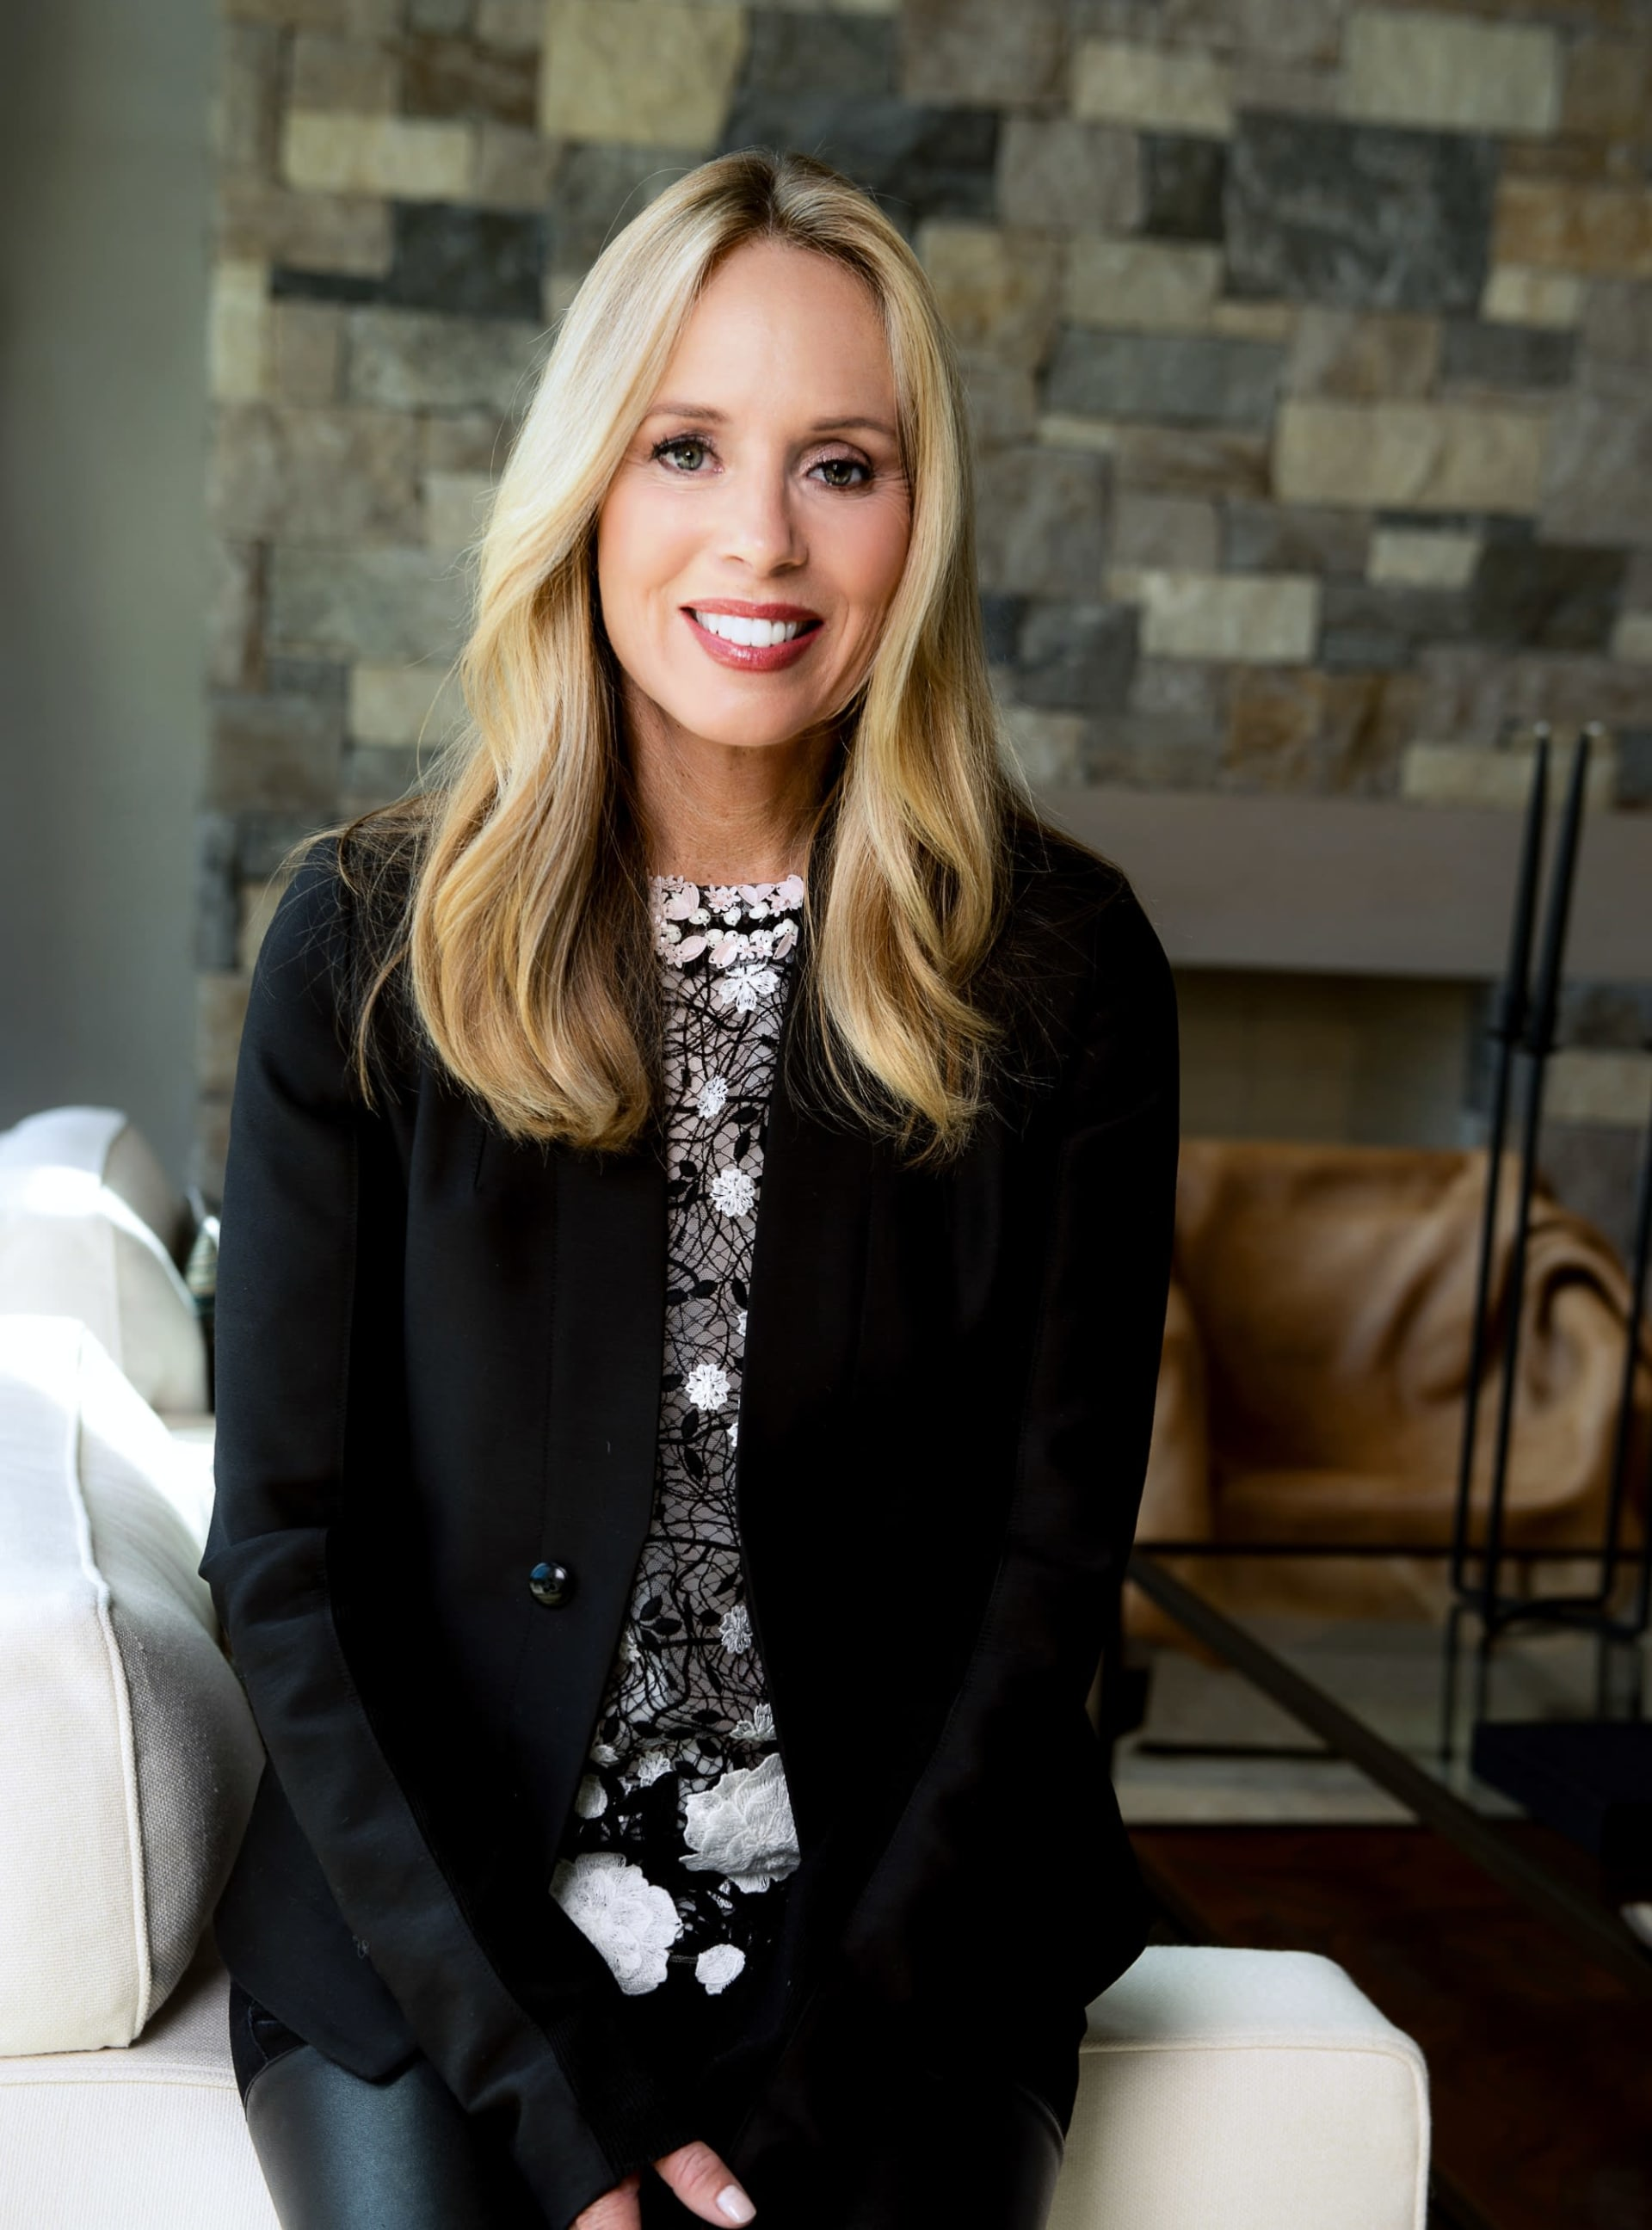 CARRIE WELLS: RANKED #1 FOR COLDWELL BANKER GLOBALLY IN 2020!